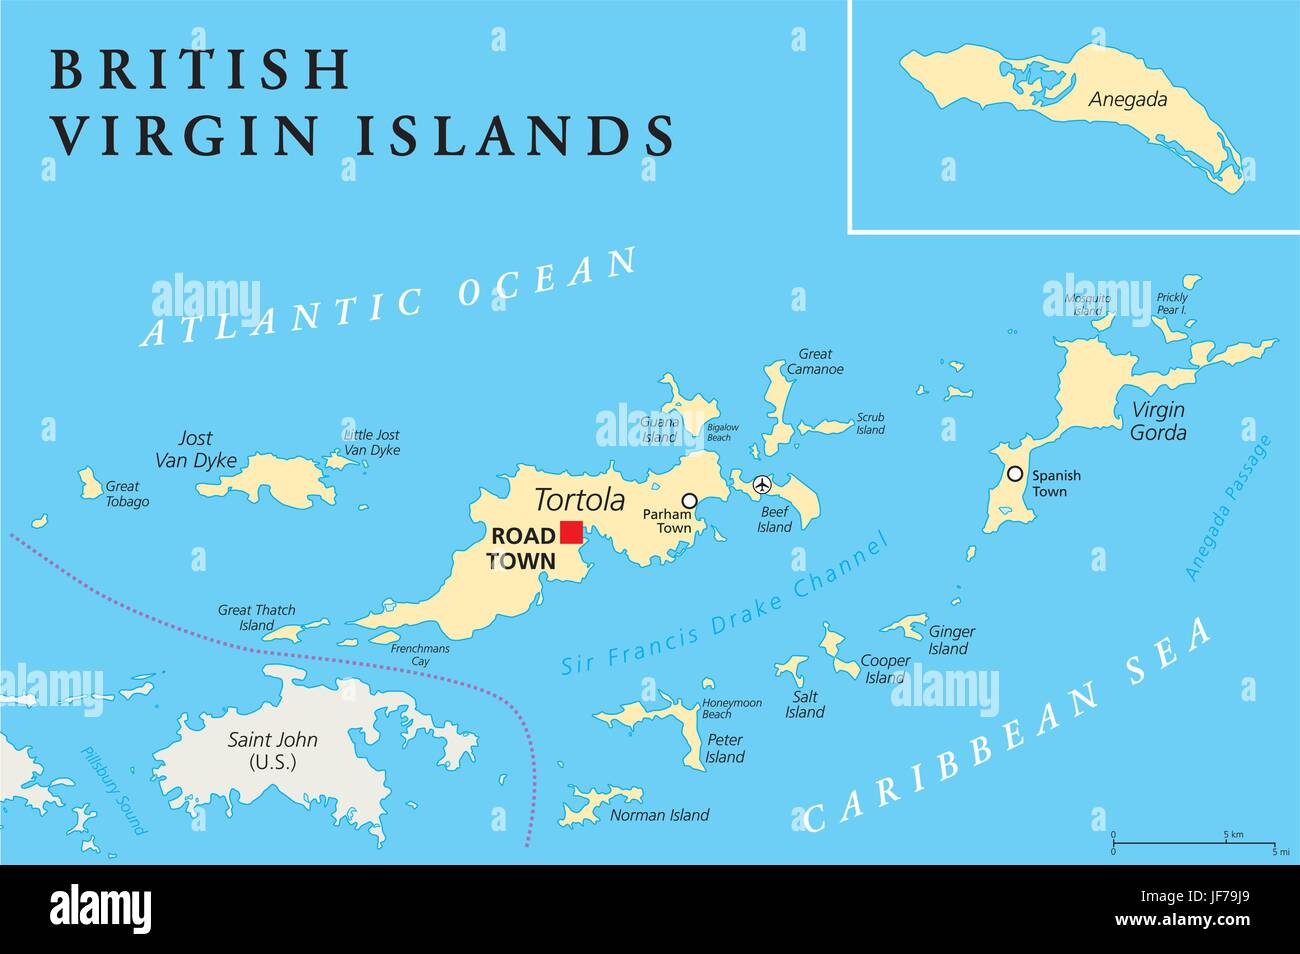 Islands antilles british map atlas map of the world virgin islands antilles british map atlas map of the world virgin travel gumiabroncs Images